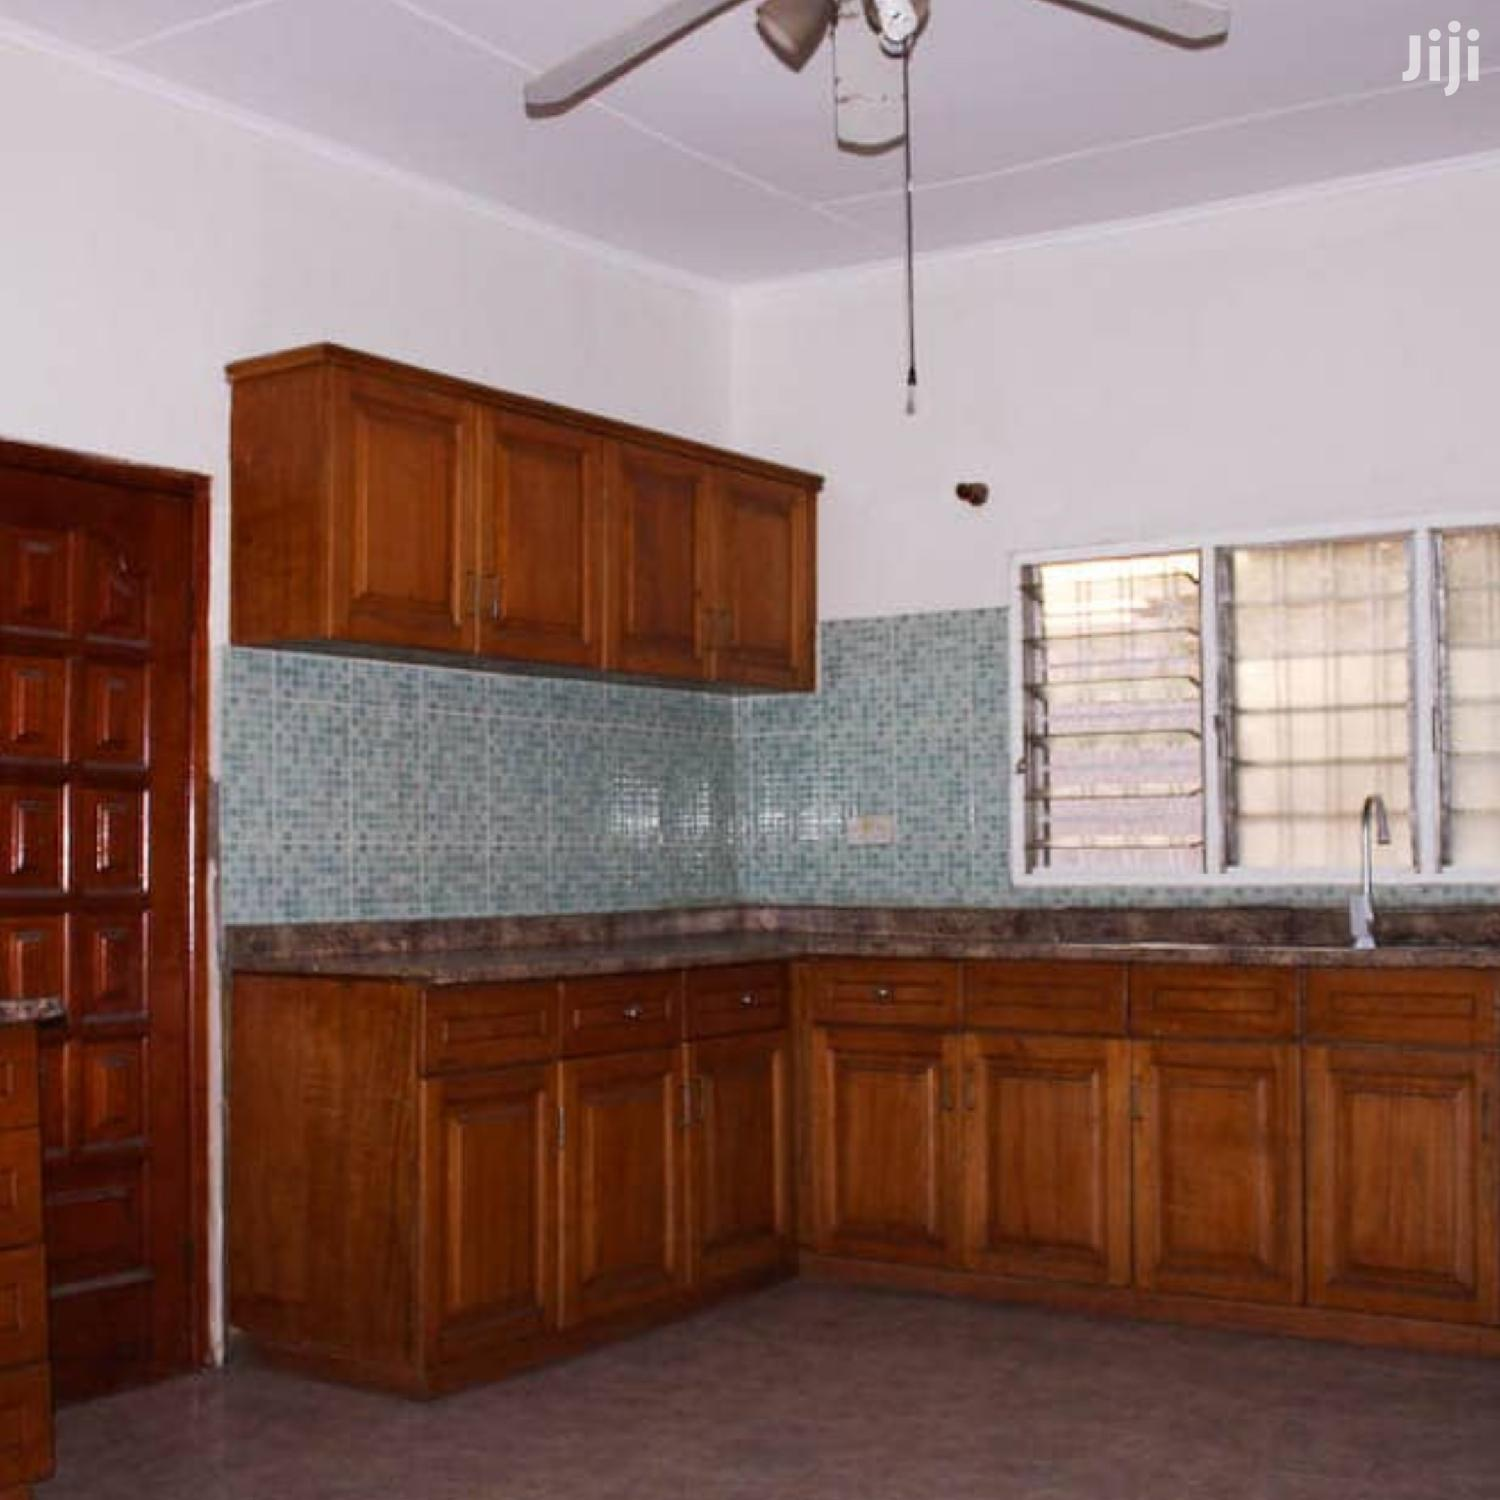 Four Bedrooms Self Compound | Houses & Apartments For Rent for sale in Ga West Municipal, Greater Accra, Ghana